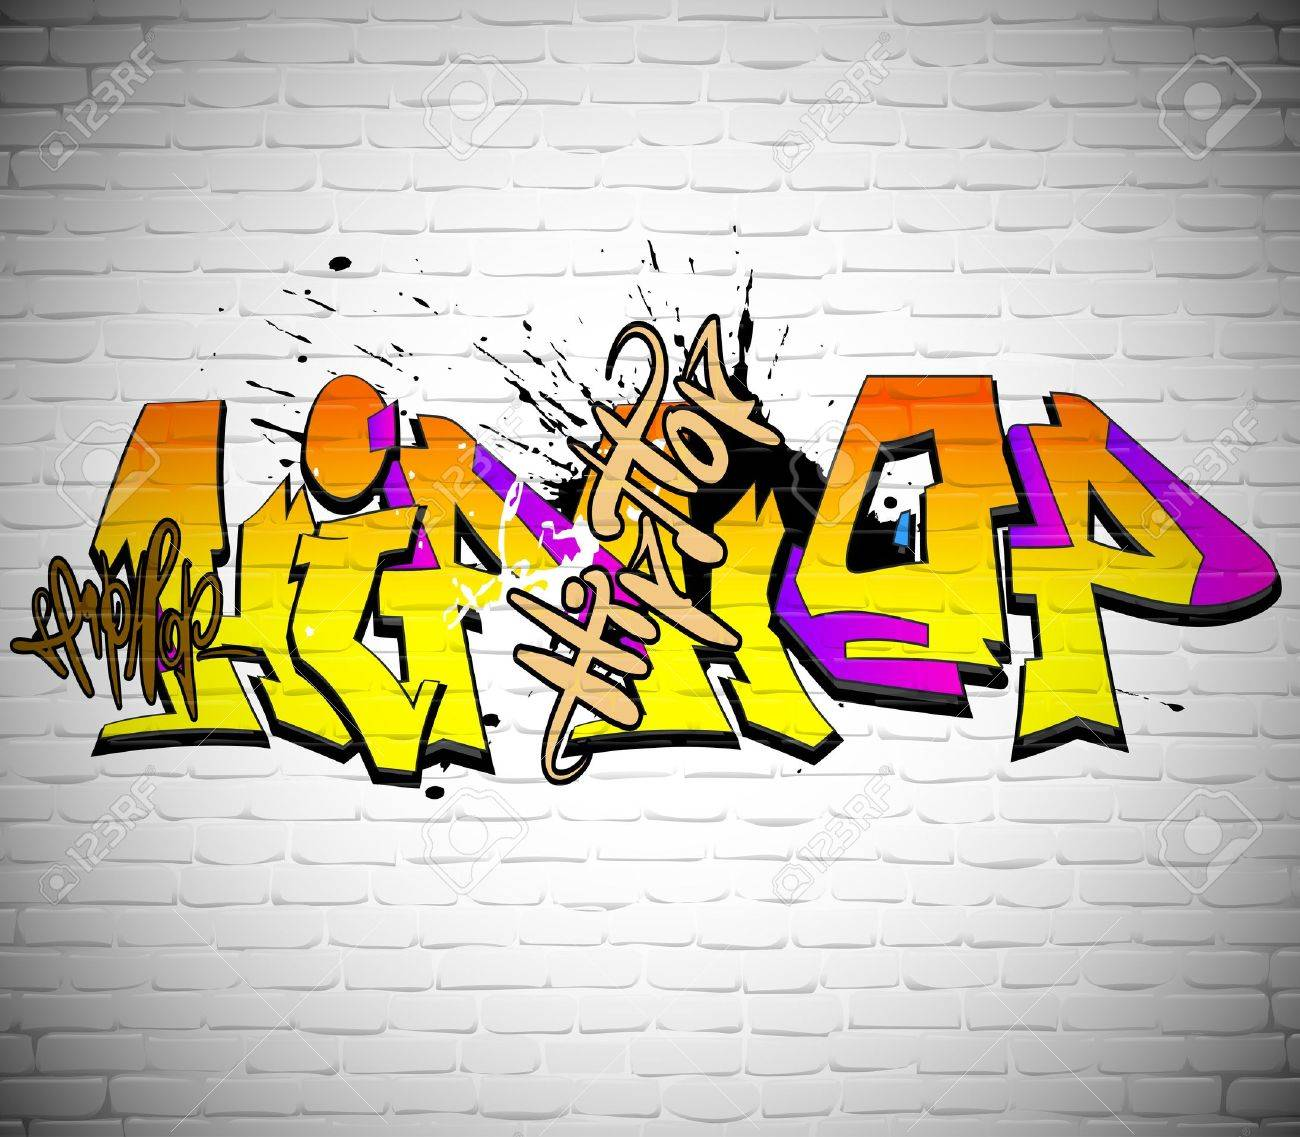 Grafitti wall background - Graffiti Wall Background Urban Art Stock Vector 17589892